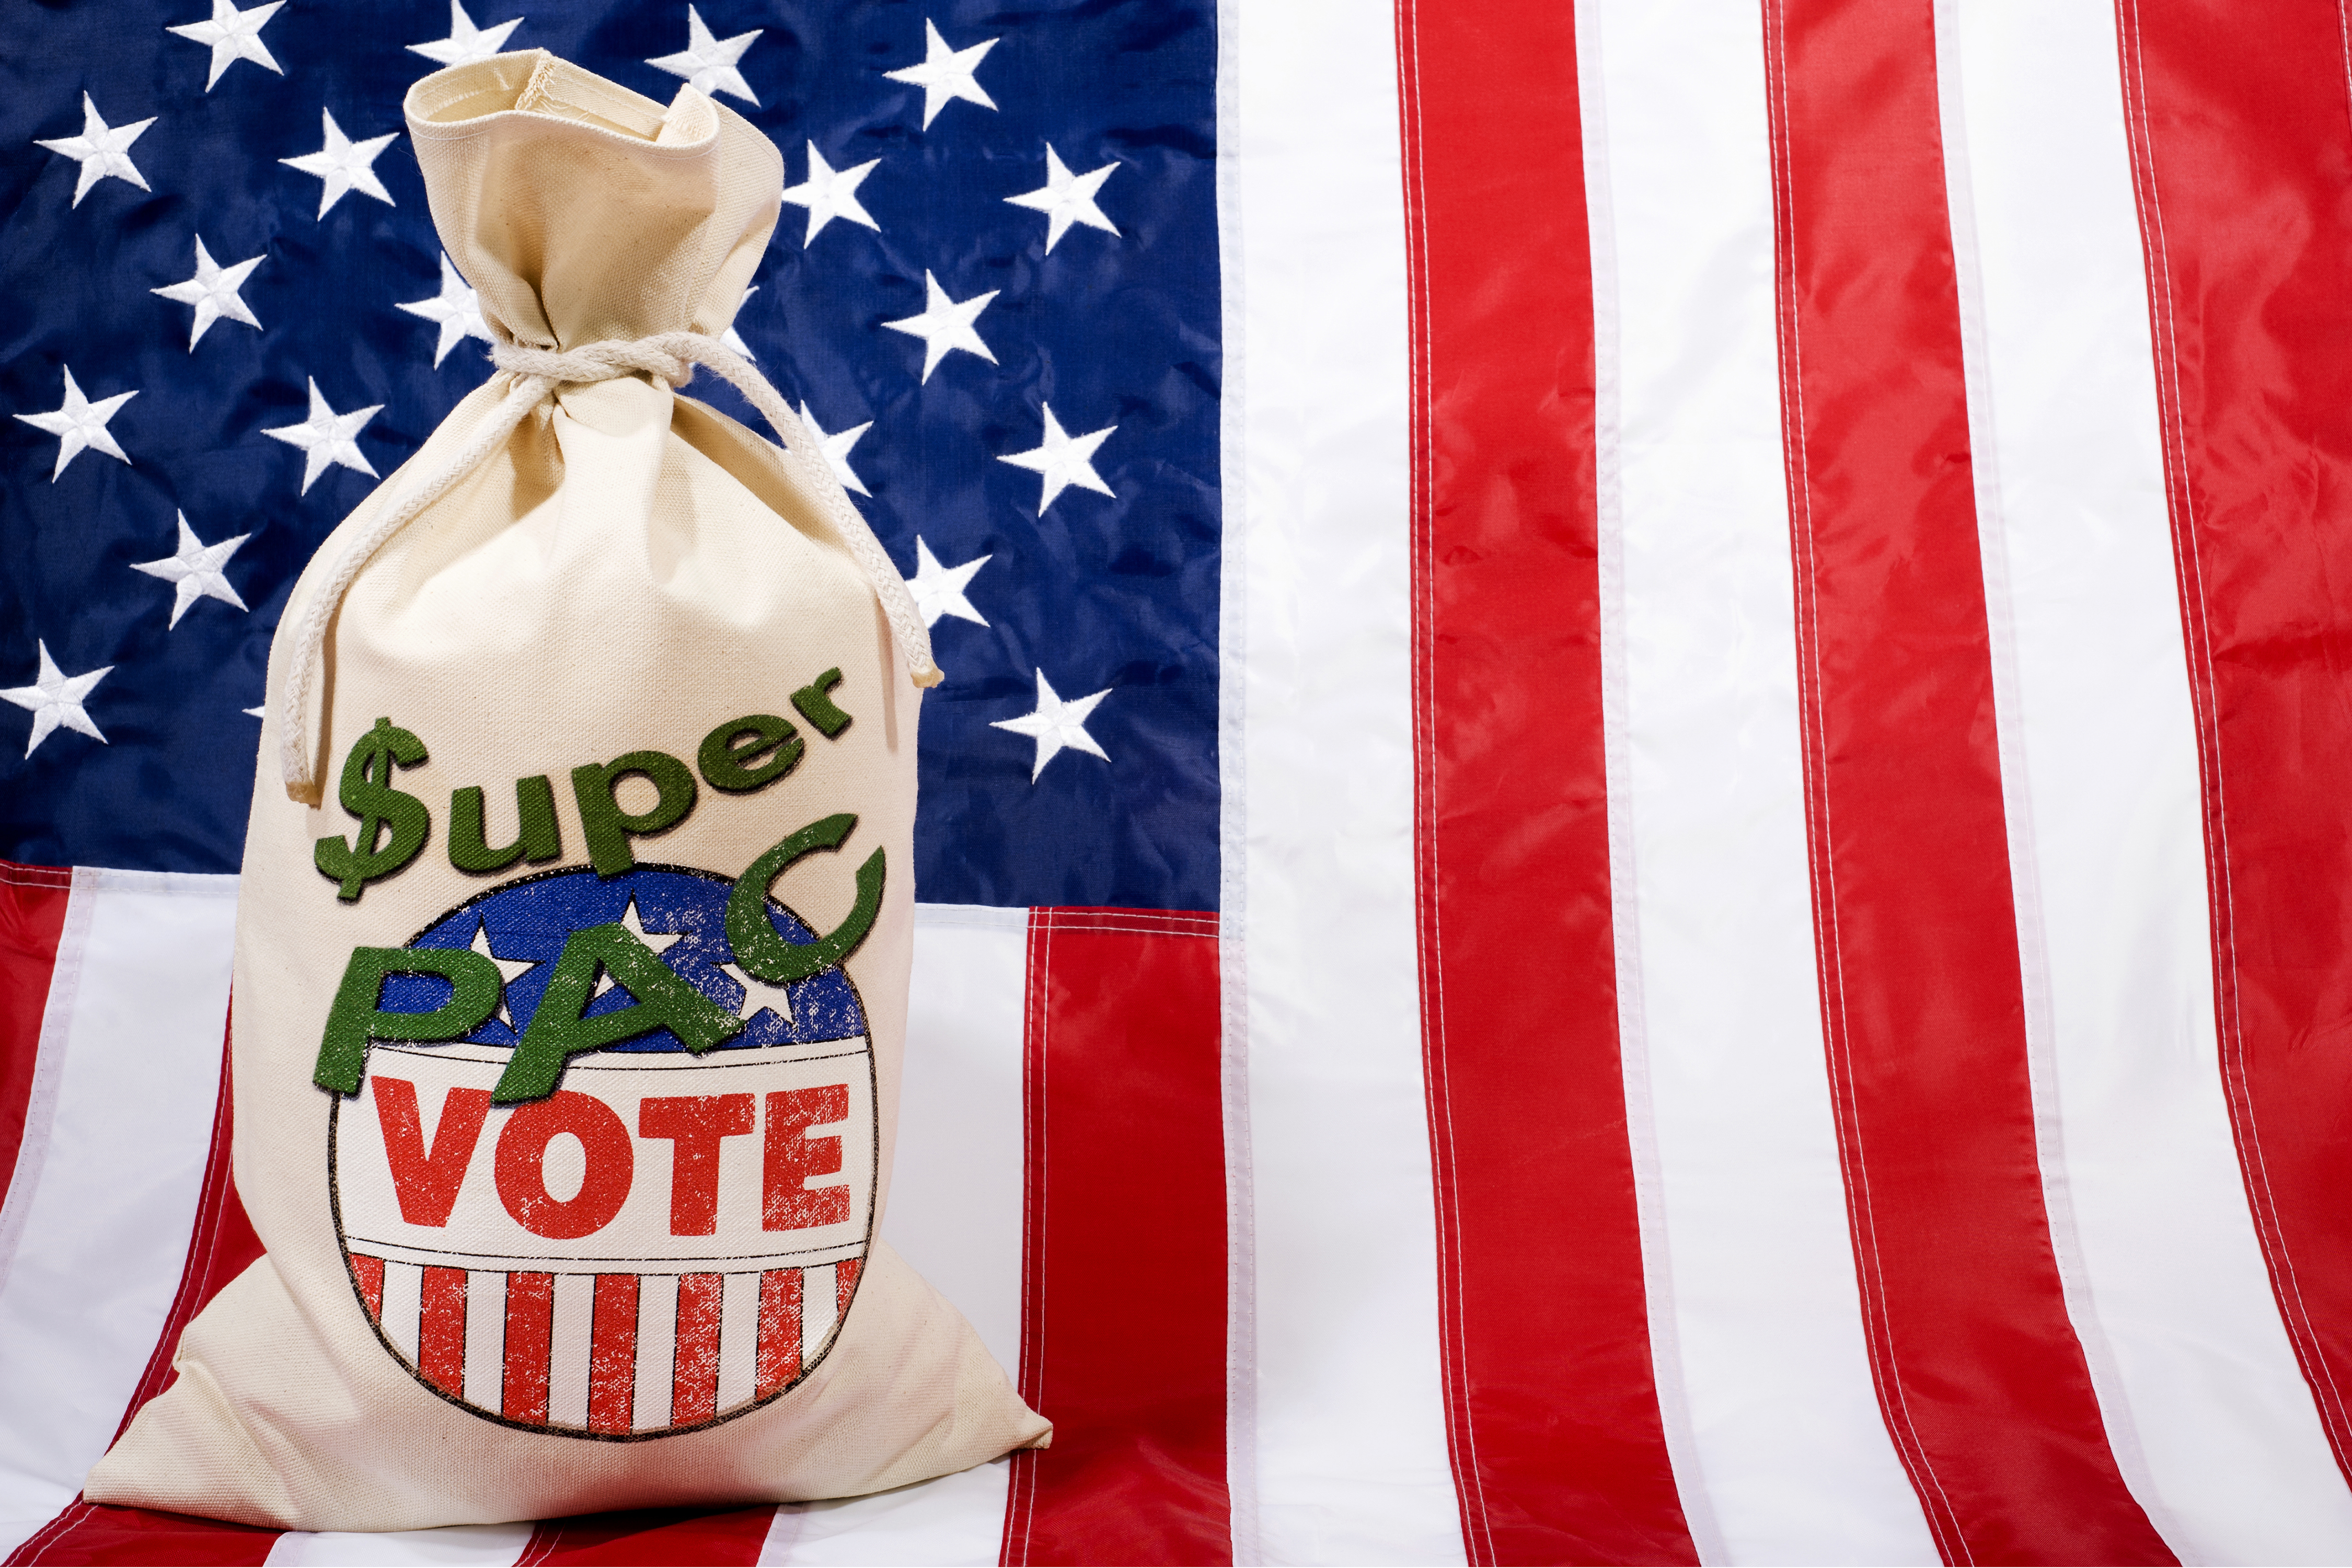 Money bag against a U.S. flag as background. Concept of the Super PACs' influence on the Presidential elections in the United States. (Getty Images)